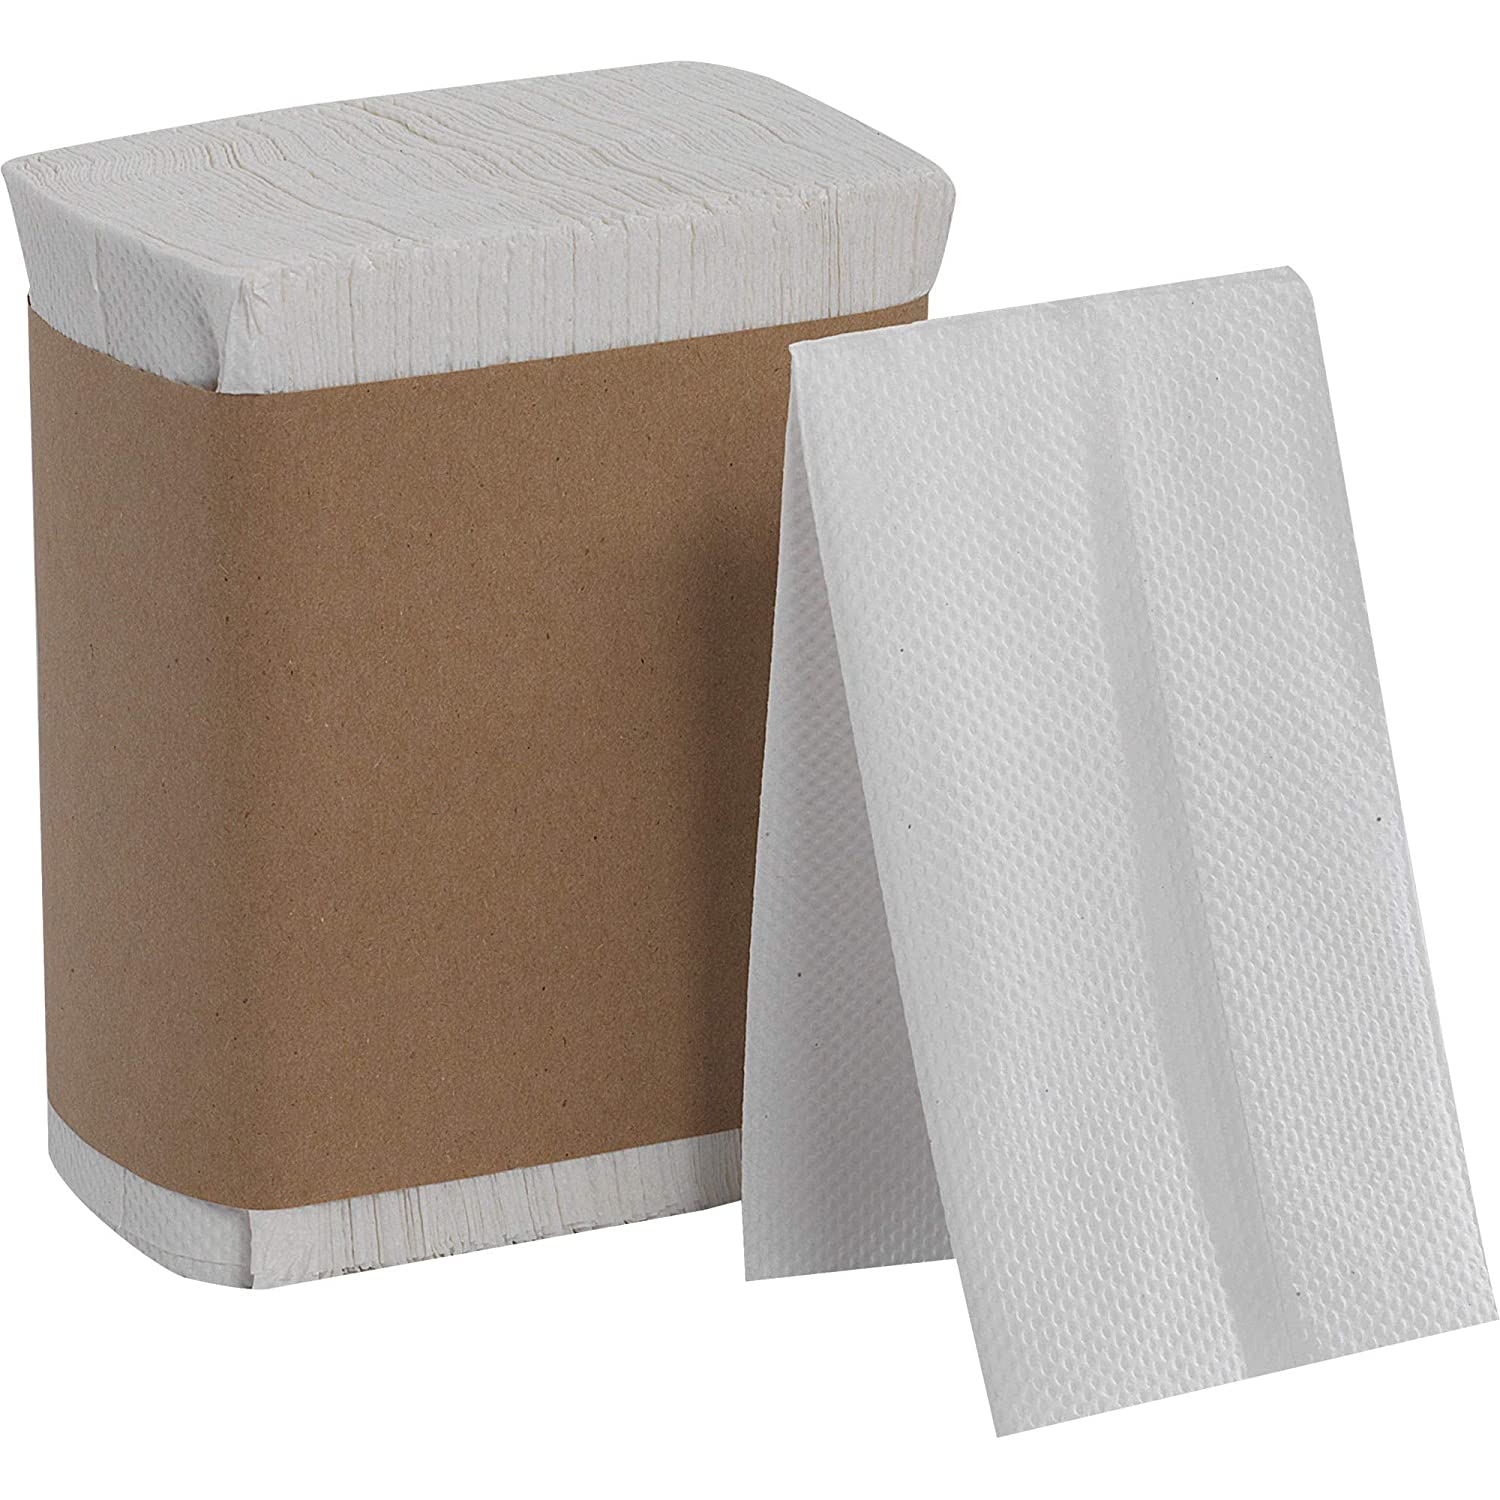 Georgia Pacific Hynap 33201 White Tall Fold Dispenser Napkin 13 5 Inch Length X 7 Inch Width Case Of 40 Bands 250 Per Band Amazon Ca Industrial Scientific